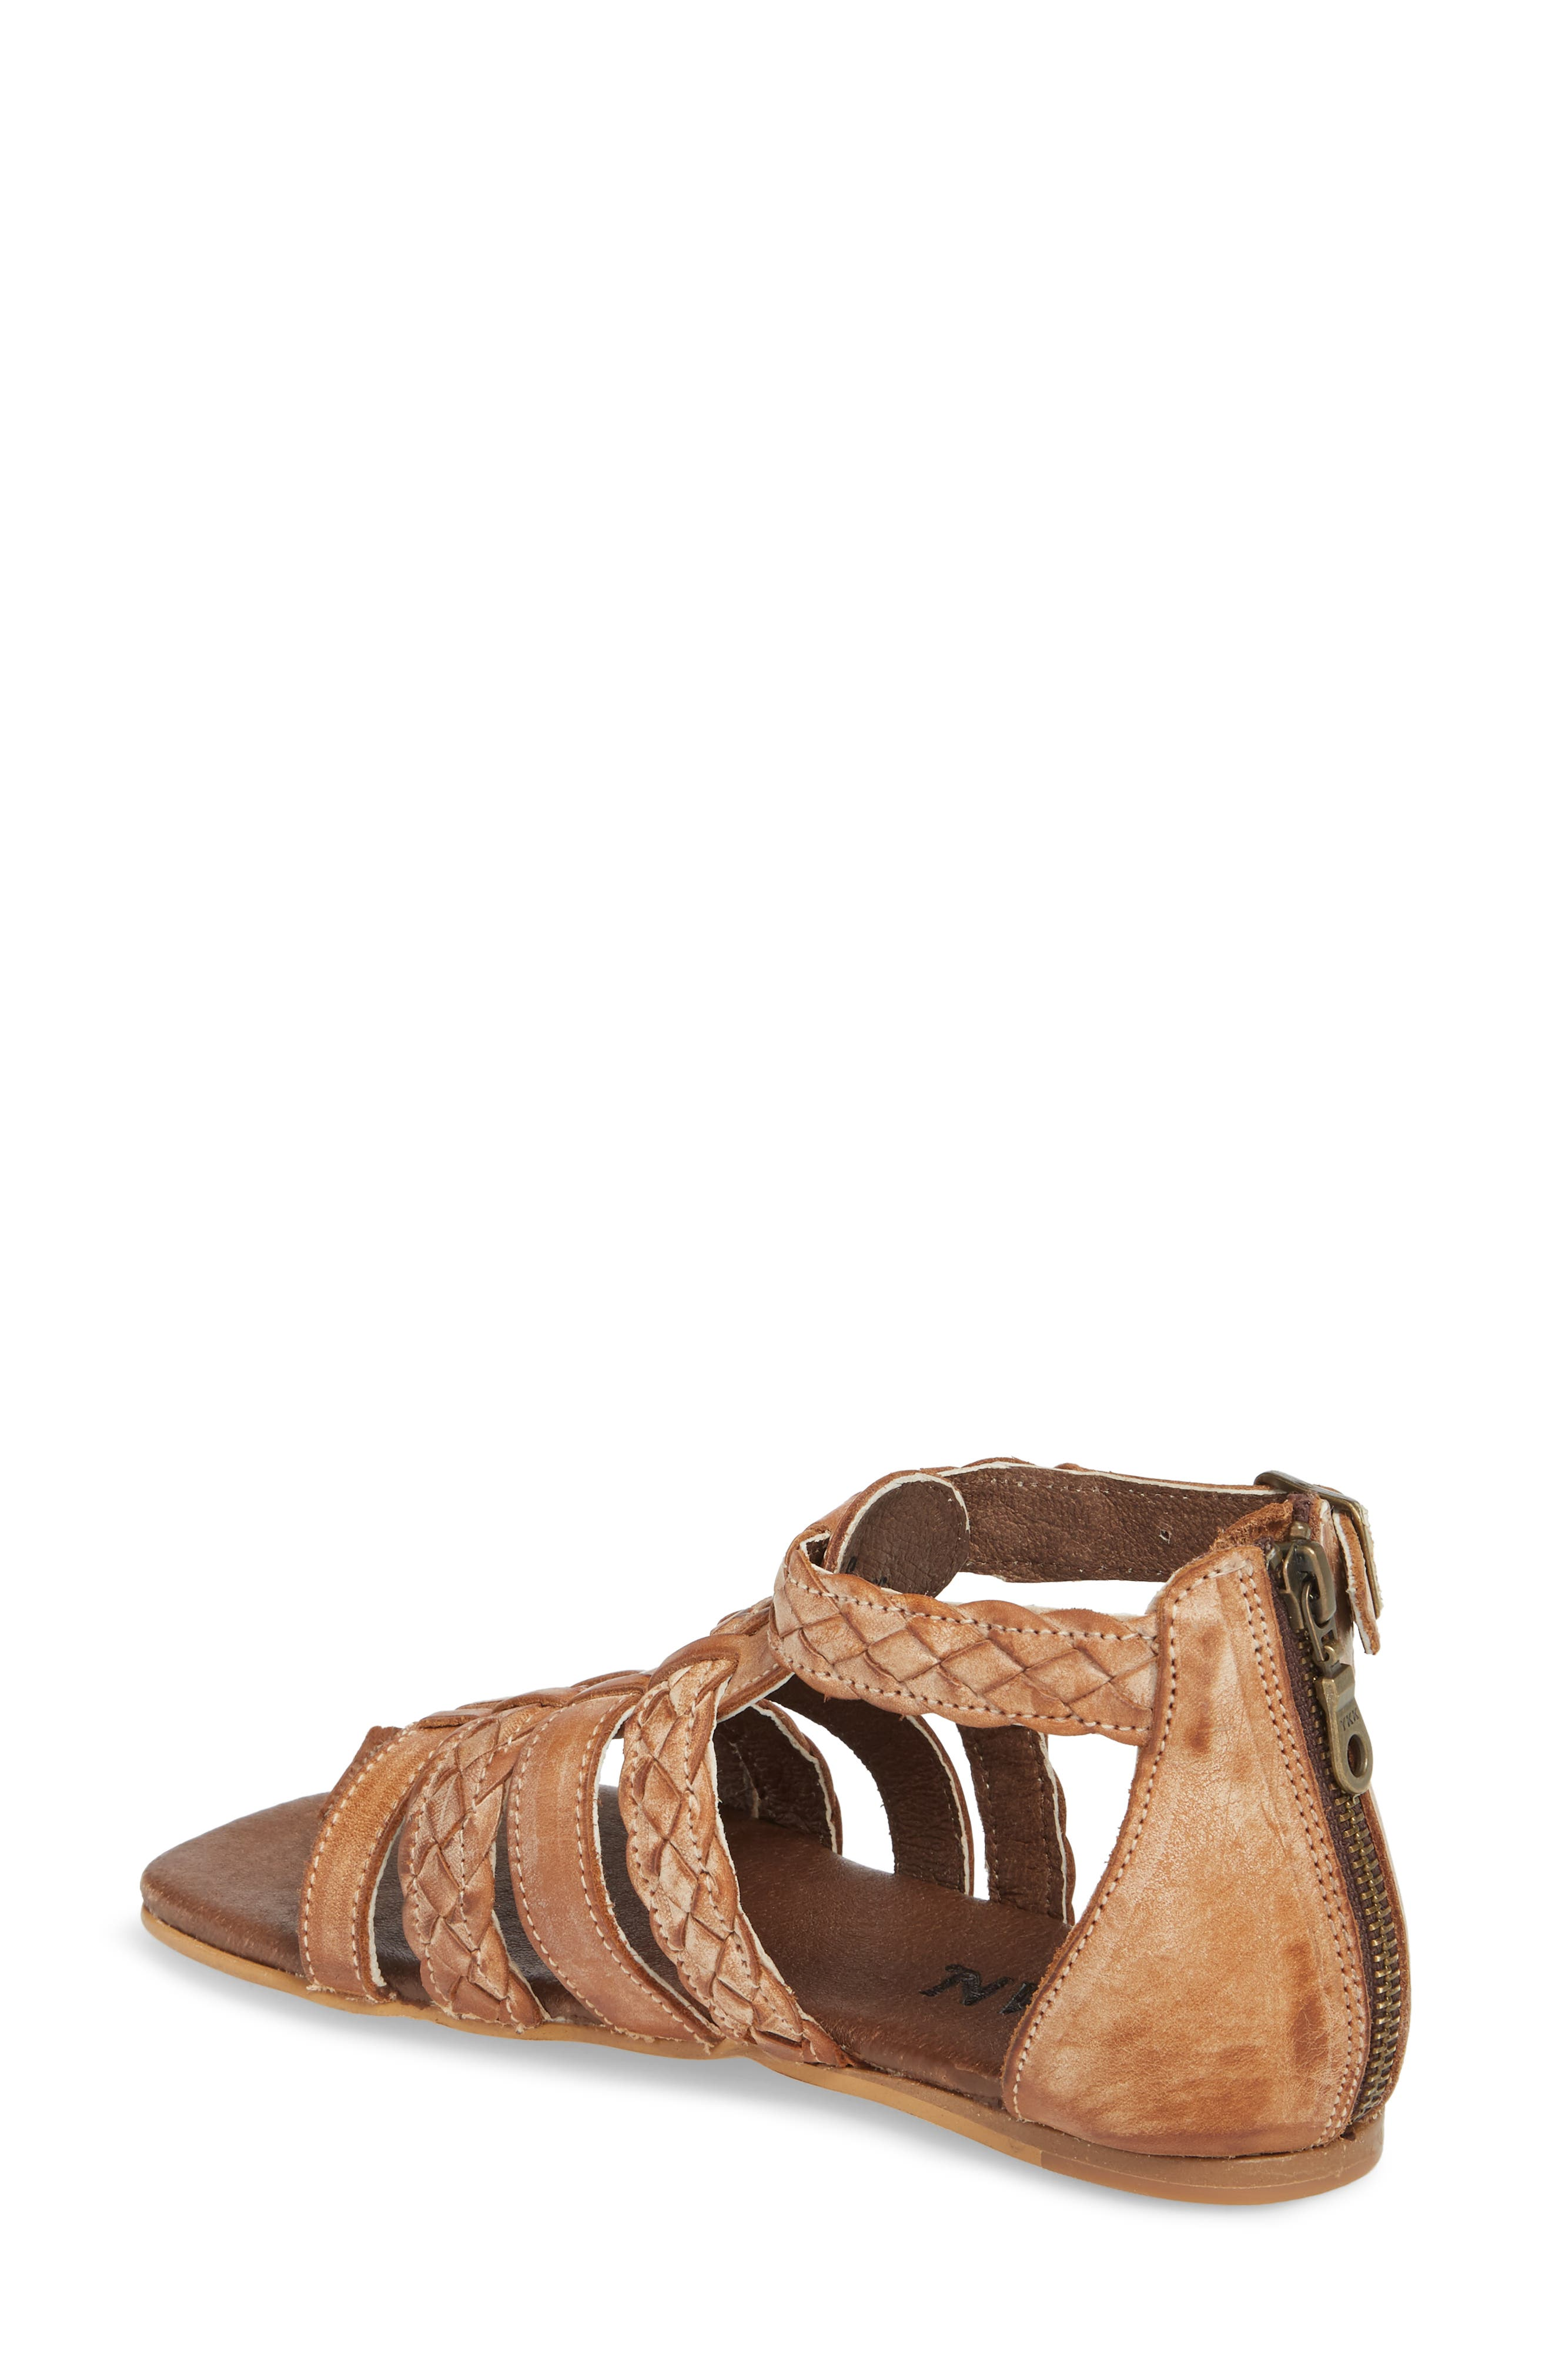 Kaliope Sandal,                             Alternate thumbnail 2, color,                             VICTORIA COGNAC/ WHITE